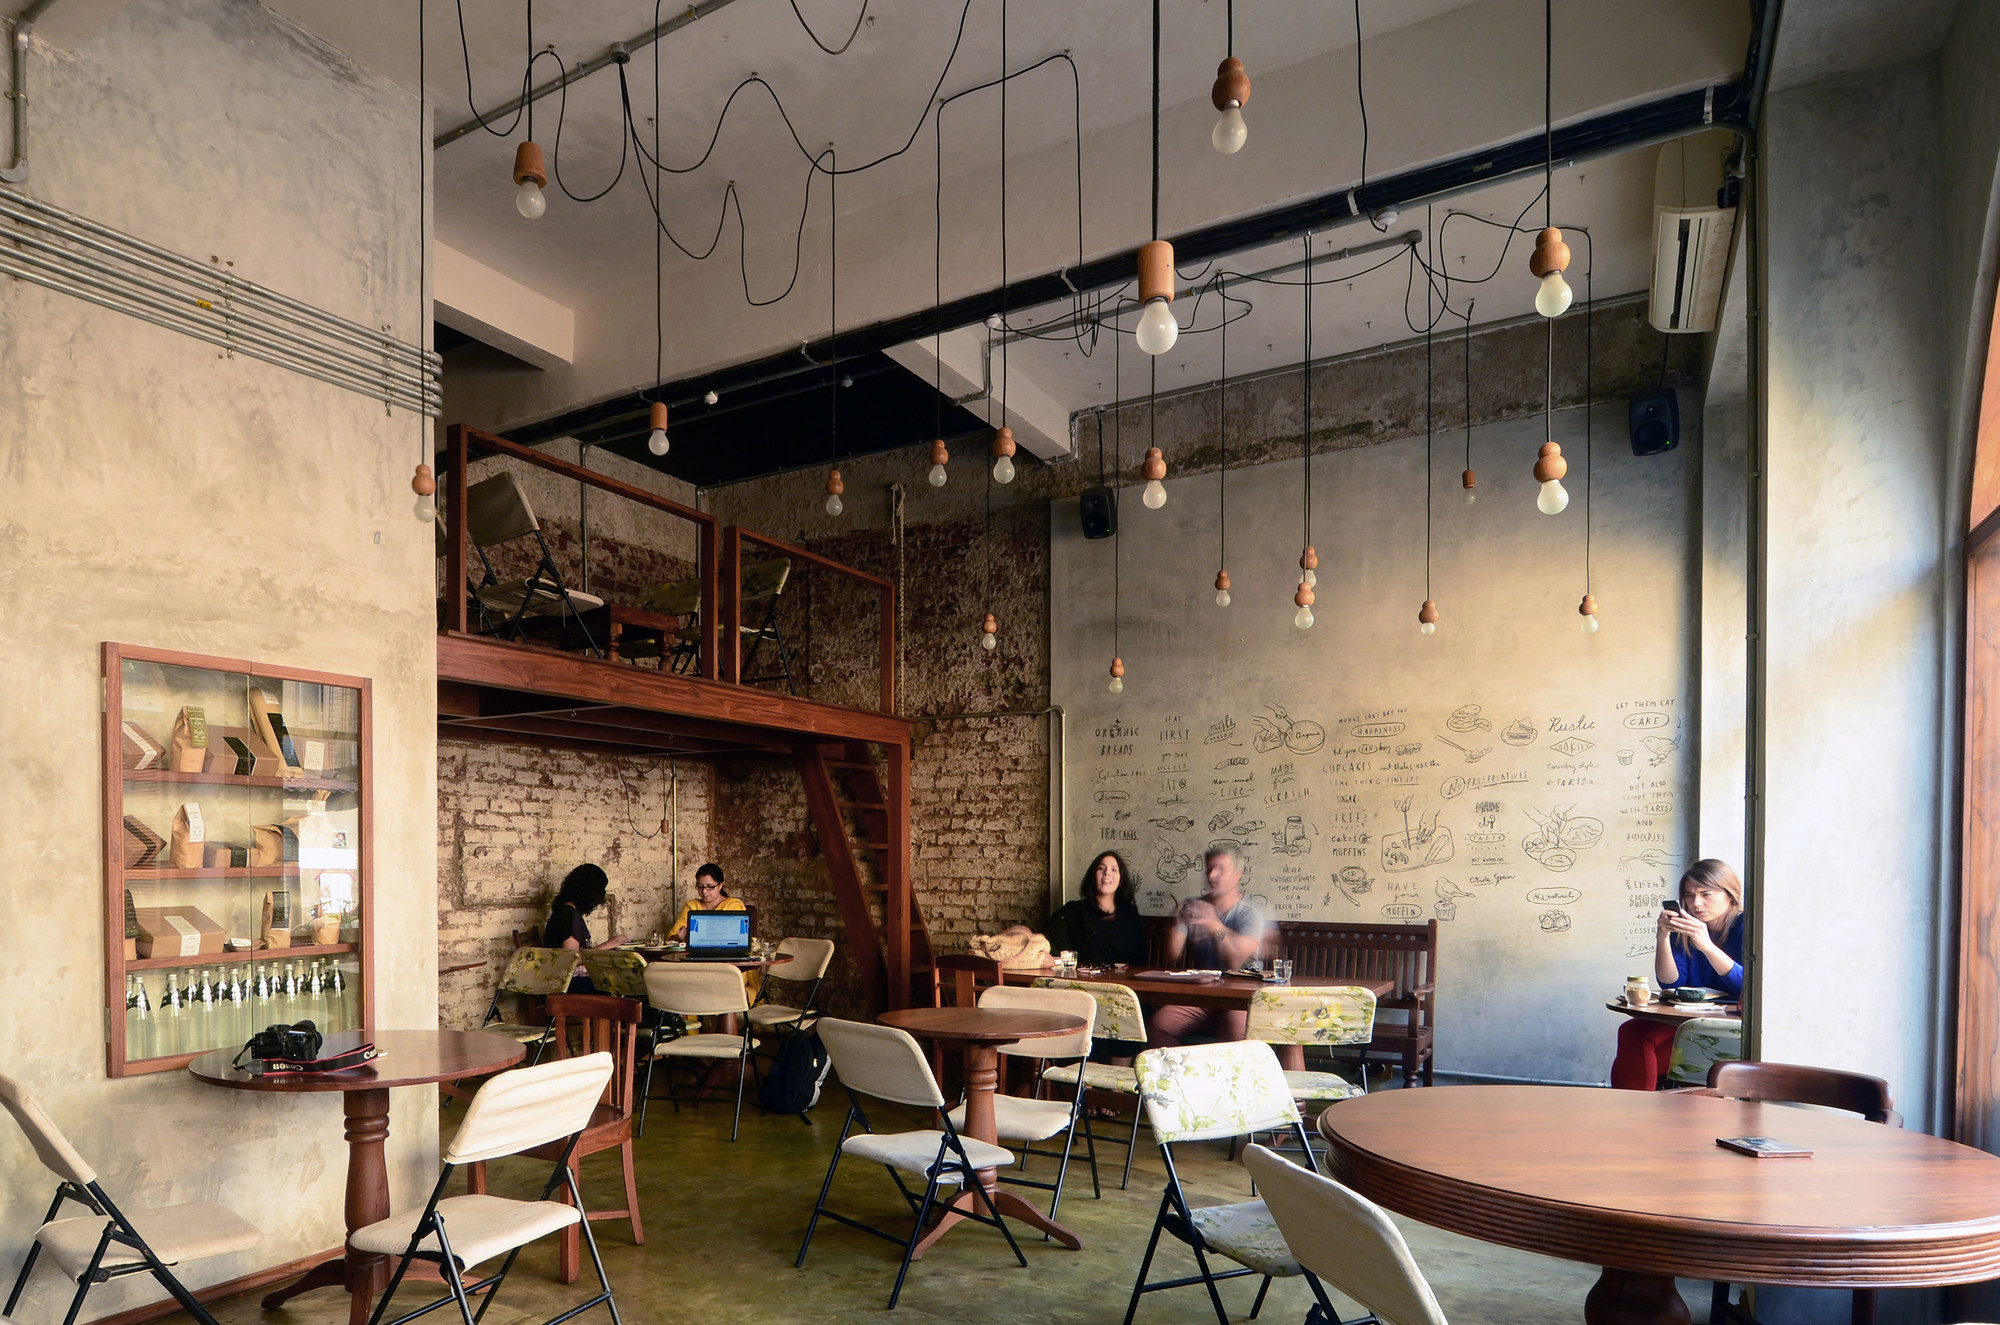 Birdsong Cafe / Studio Eight Twentythree, Courtesy of Studio Eight Twentythree